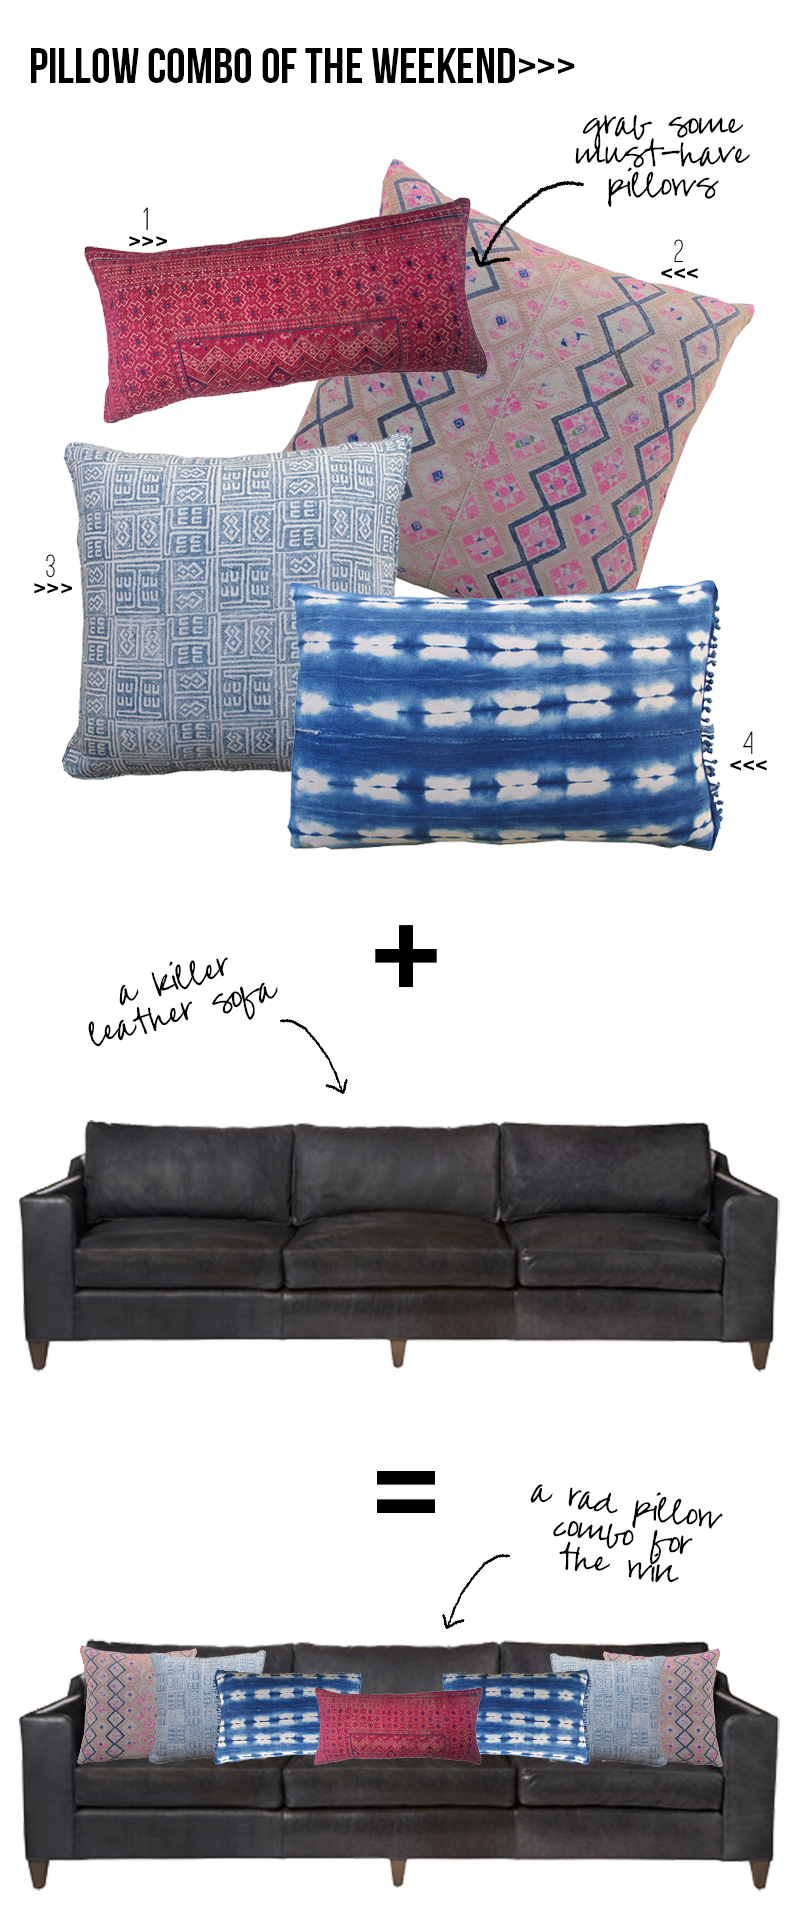 Amber Interiors - Pillow Combo of the Weekend 4.3